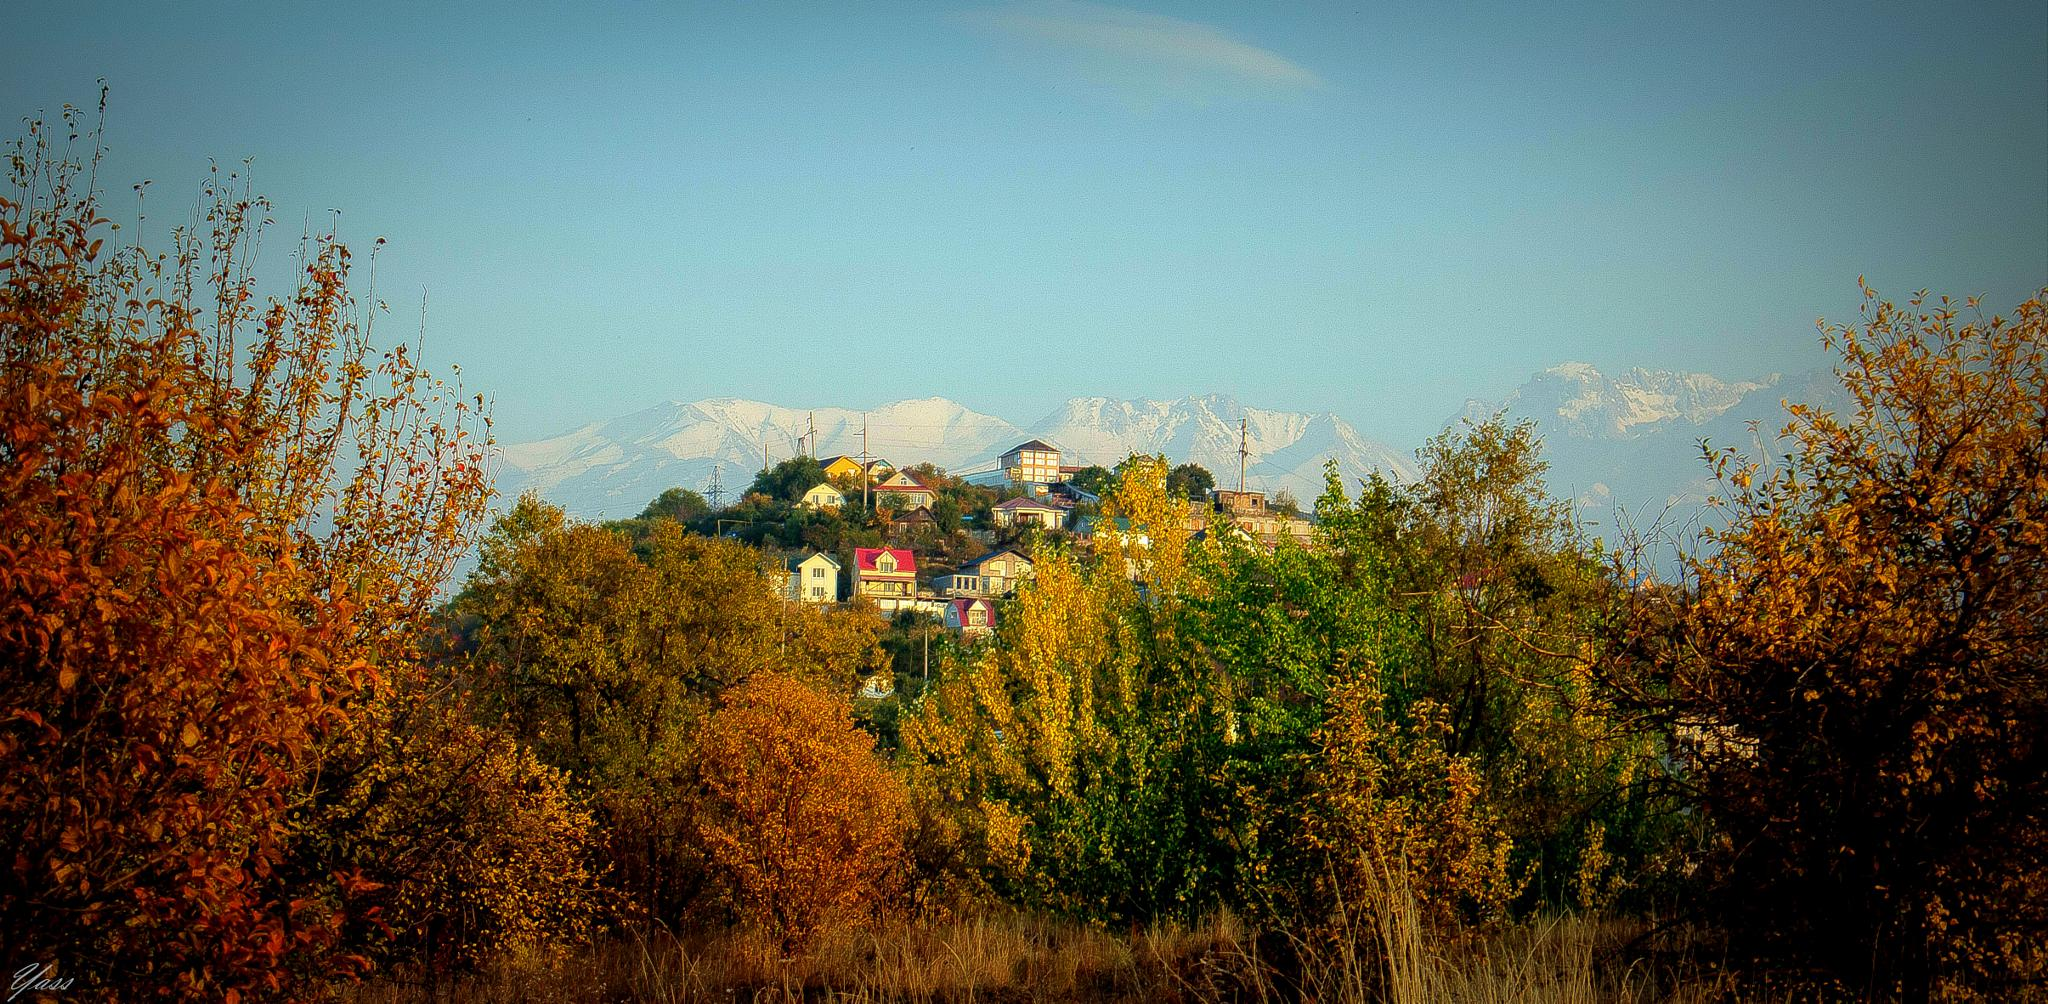 Prettty village by yassen.botcharov